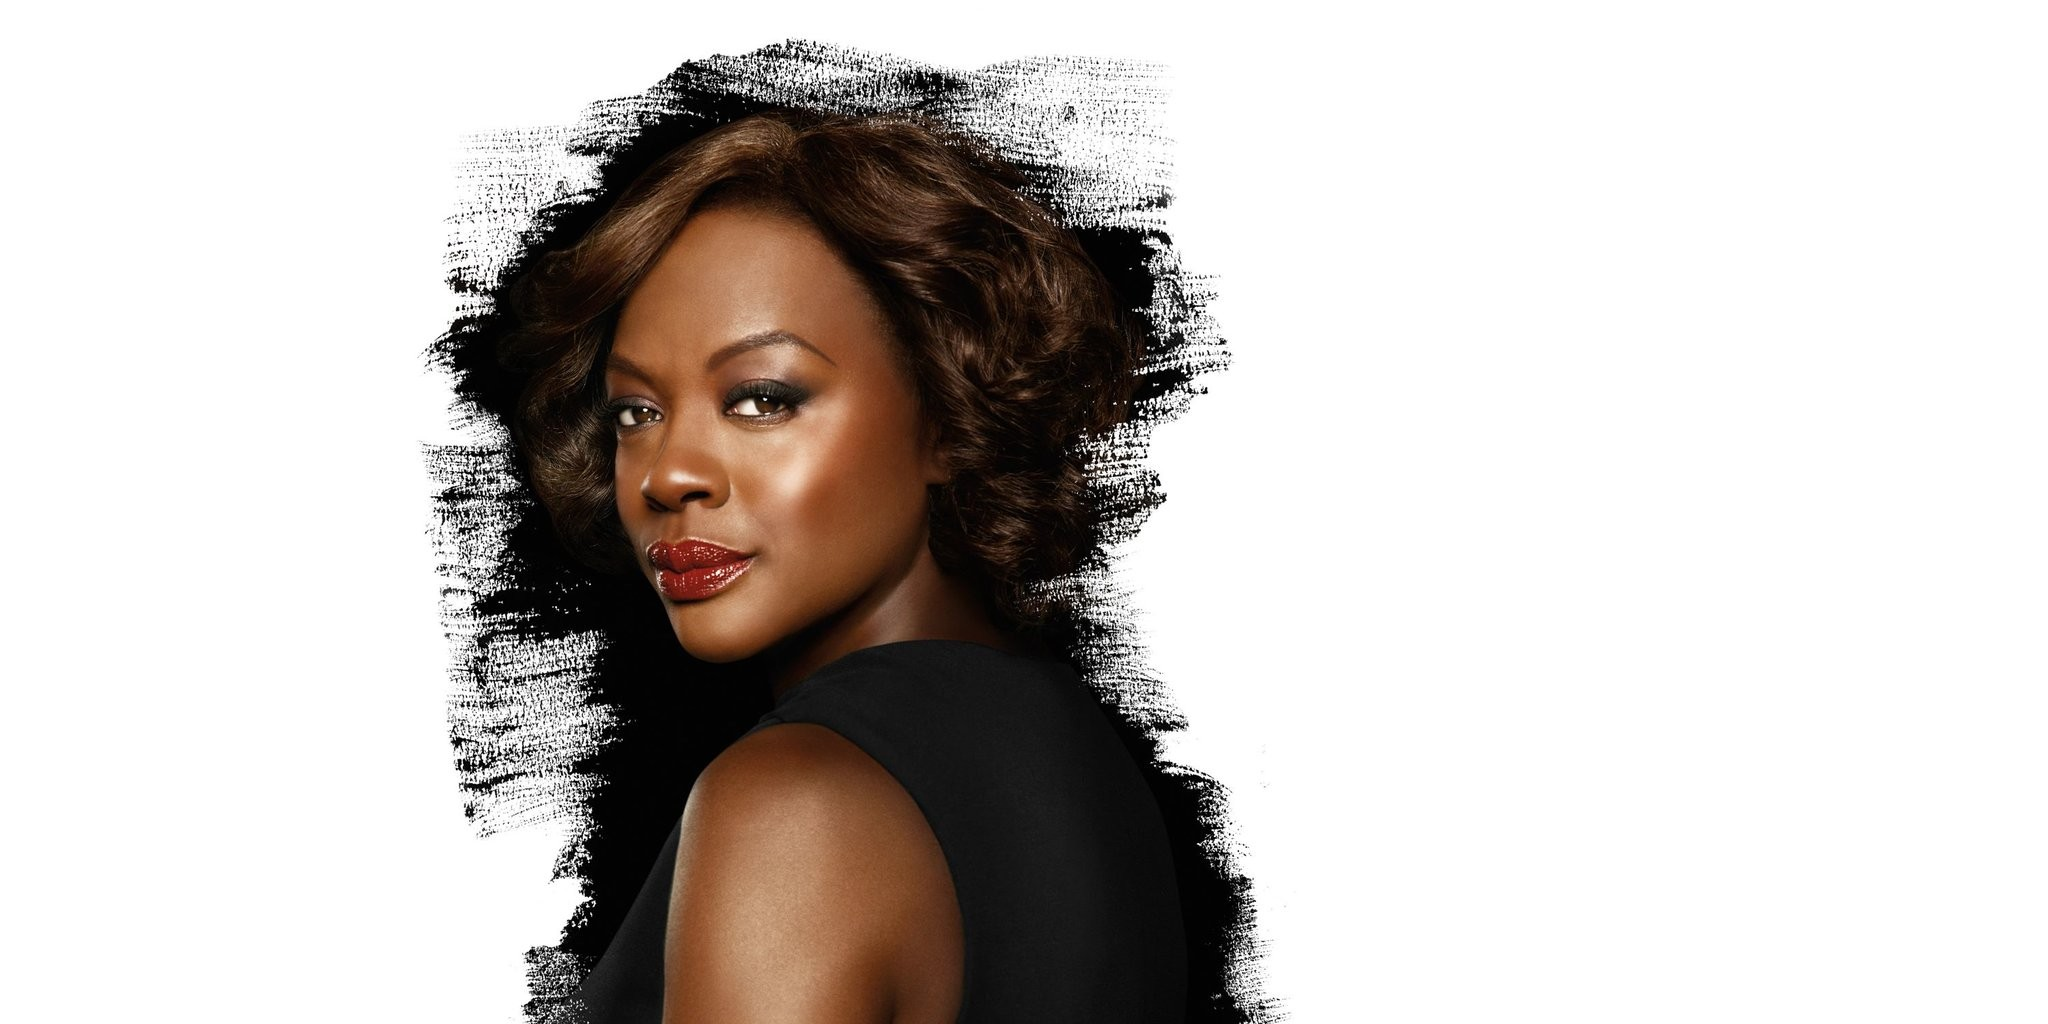 how to get away with murder season3 tvmuse